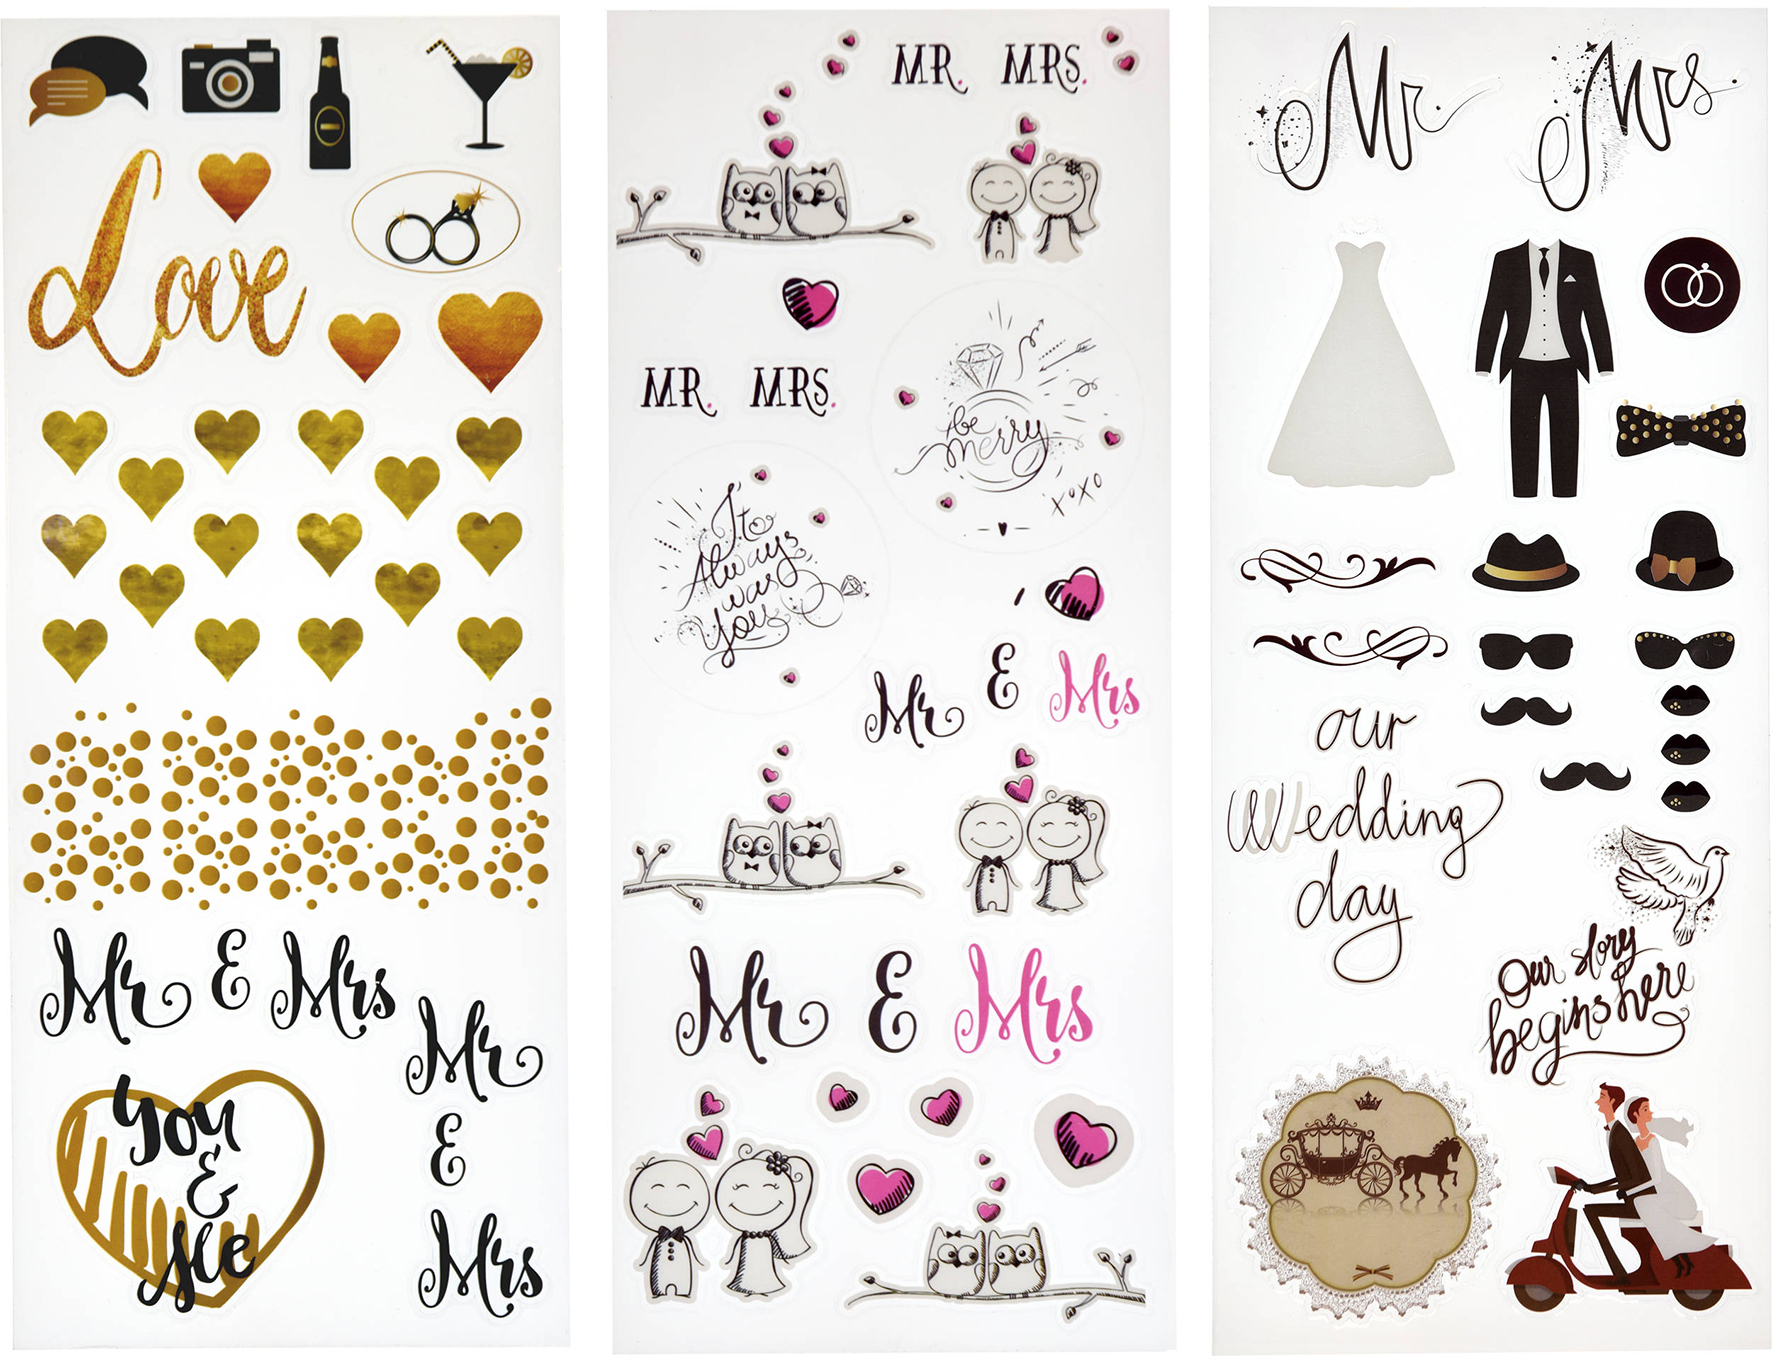 Wedding ideas for photobooth